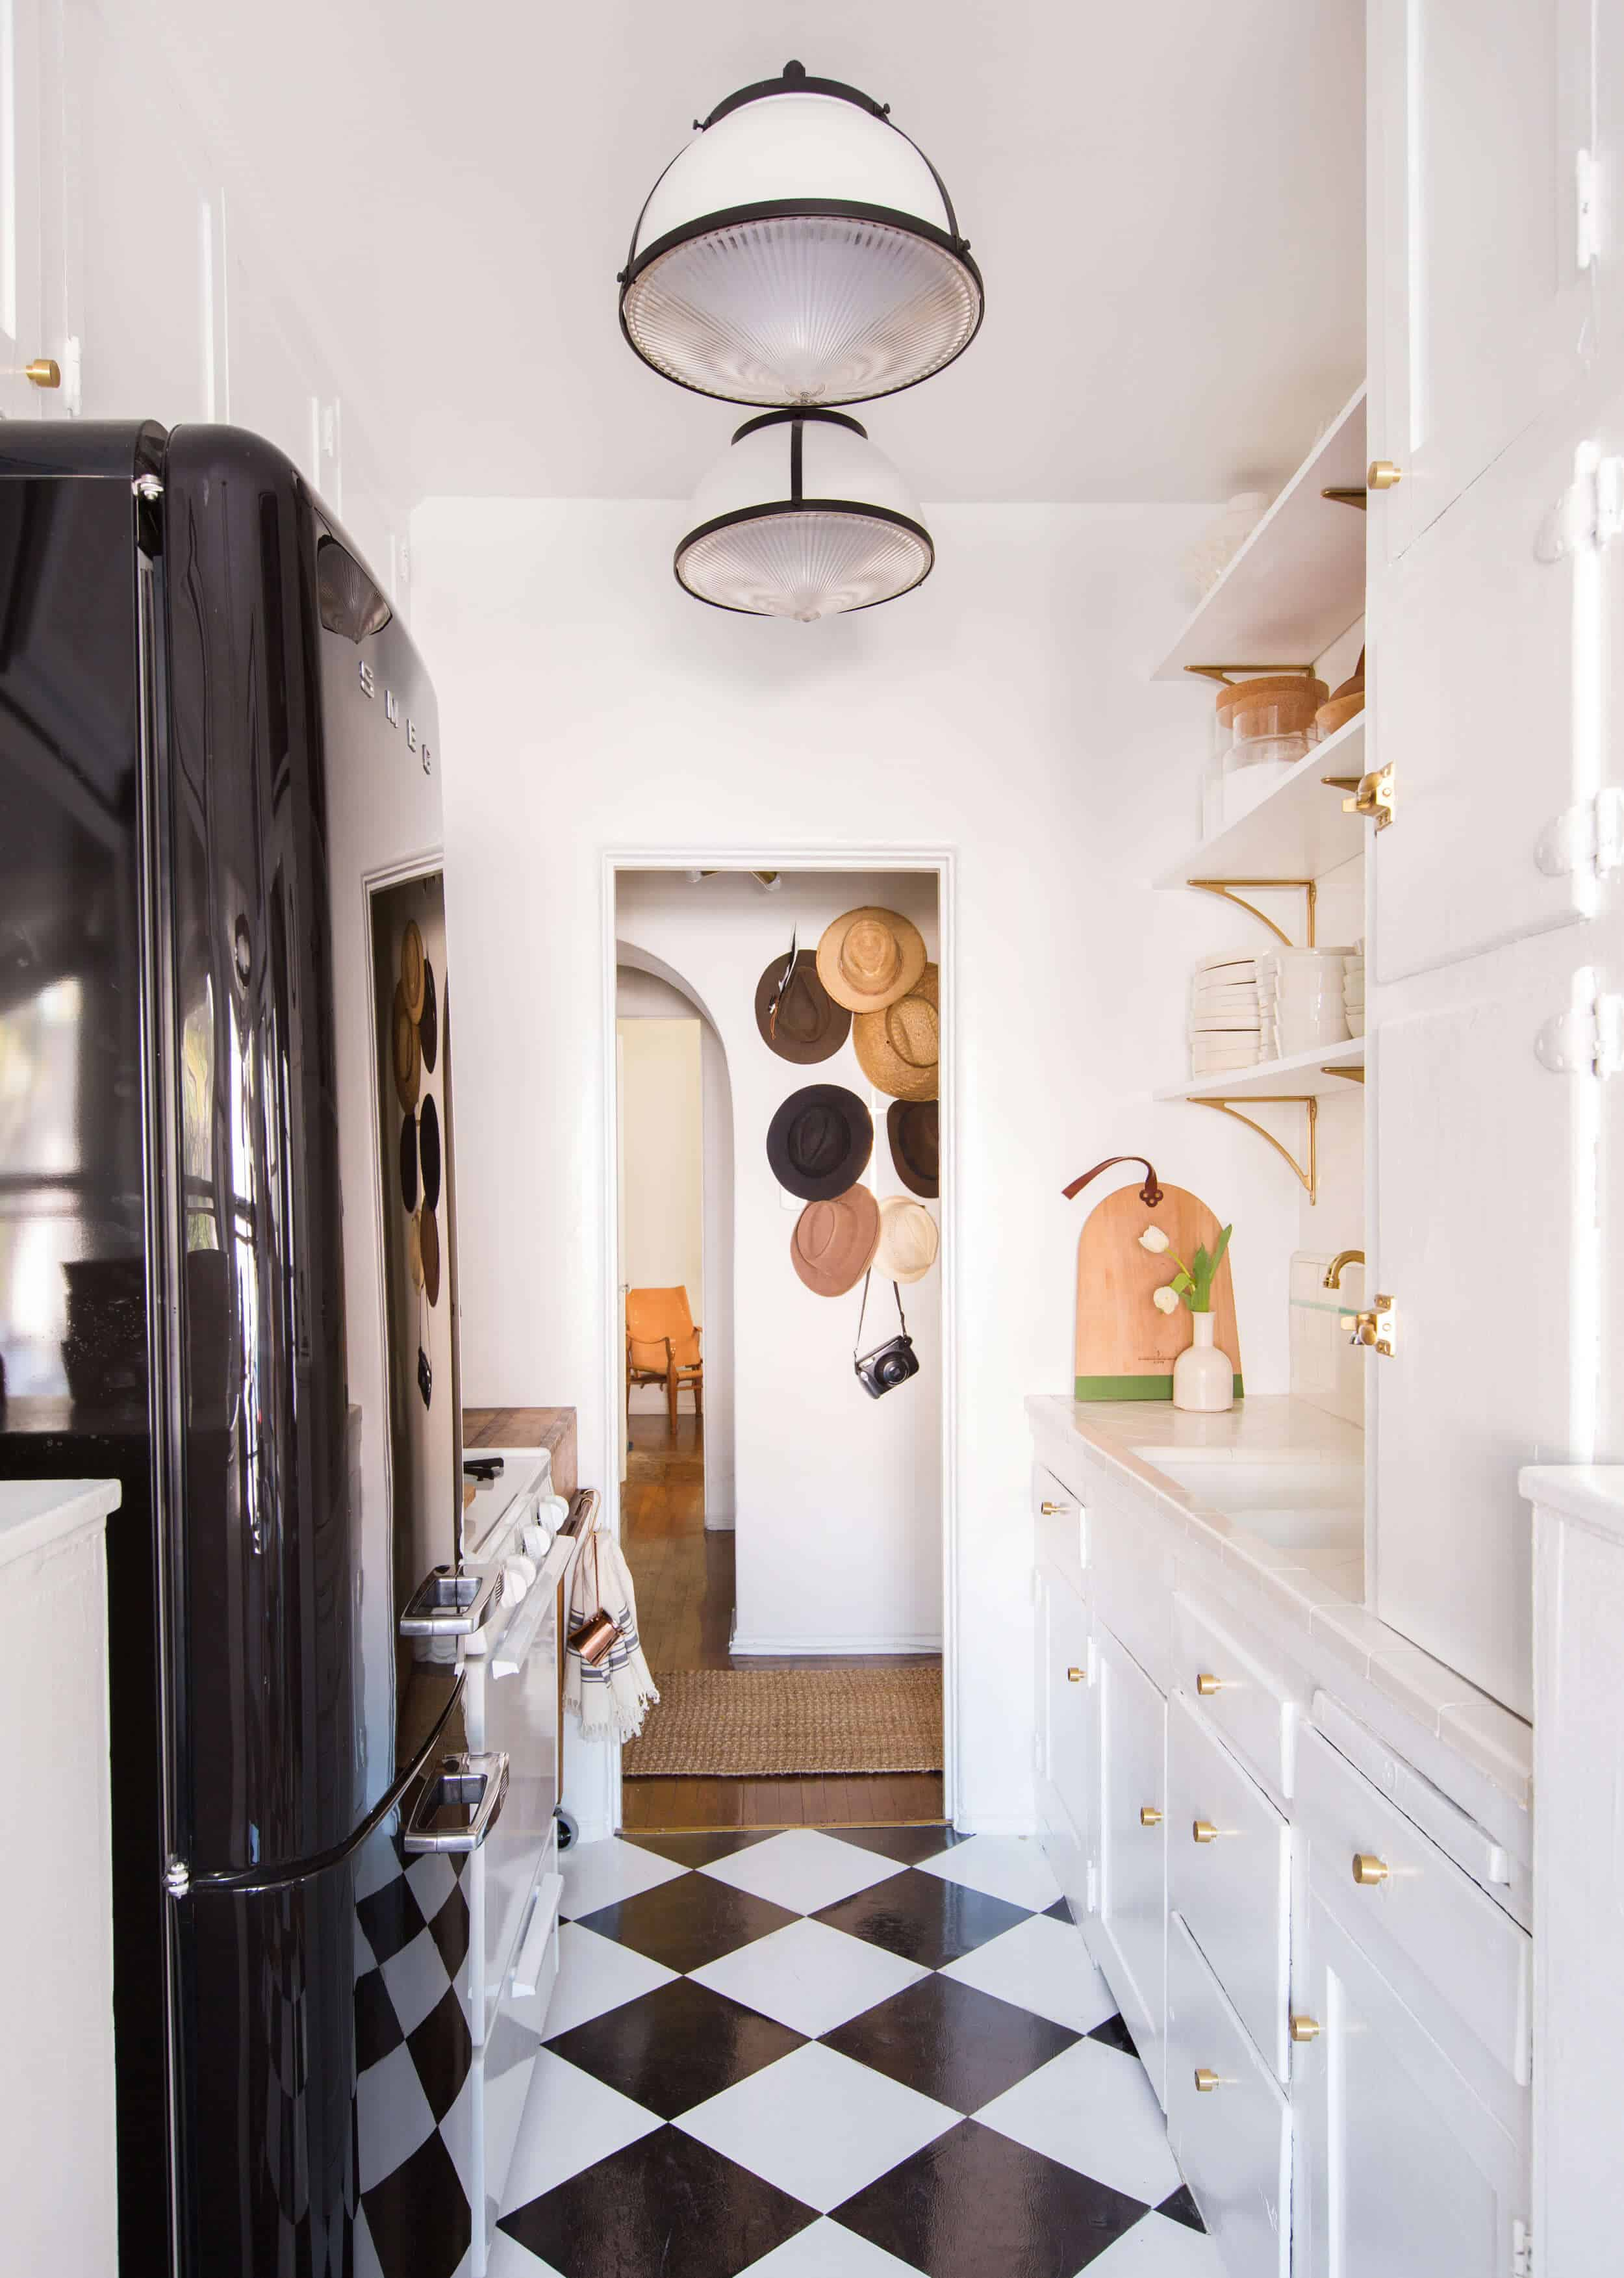 Brady-Tolbert_Emily-Henderson_Black-and-White-Kitchen_Vintage_Apartment-Refresh_Wood_Brass_Checkered-Floor_Copper-Pots_Eclectic_Glam_Modern_Traditional_22